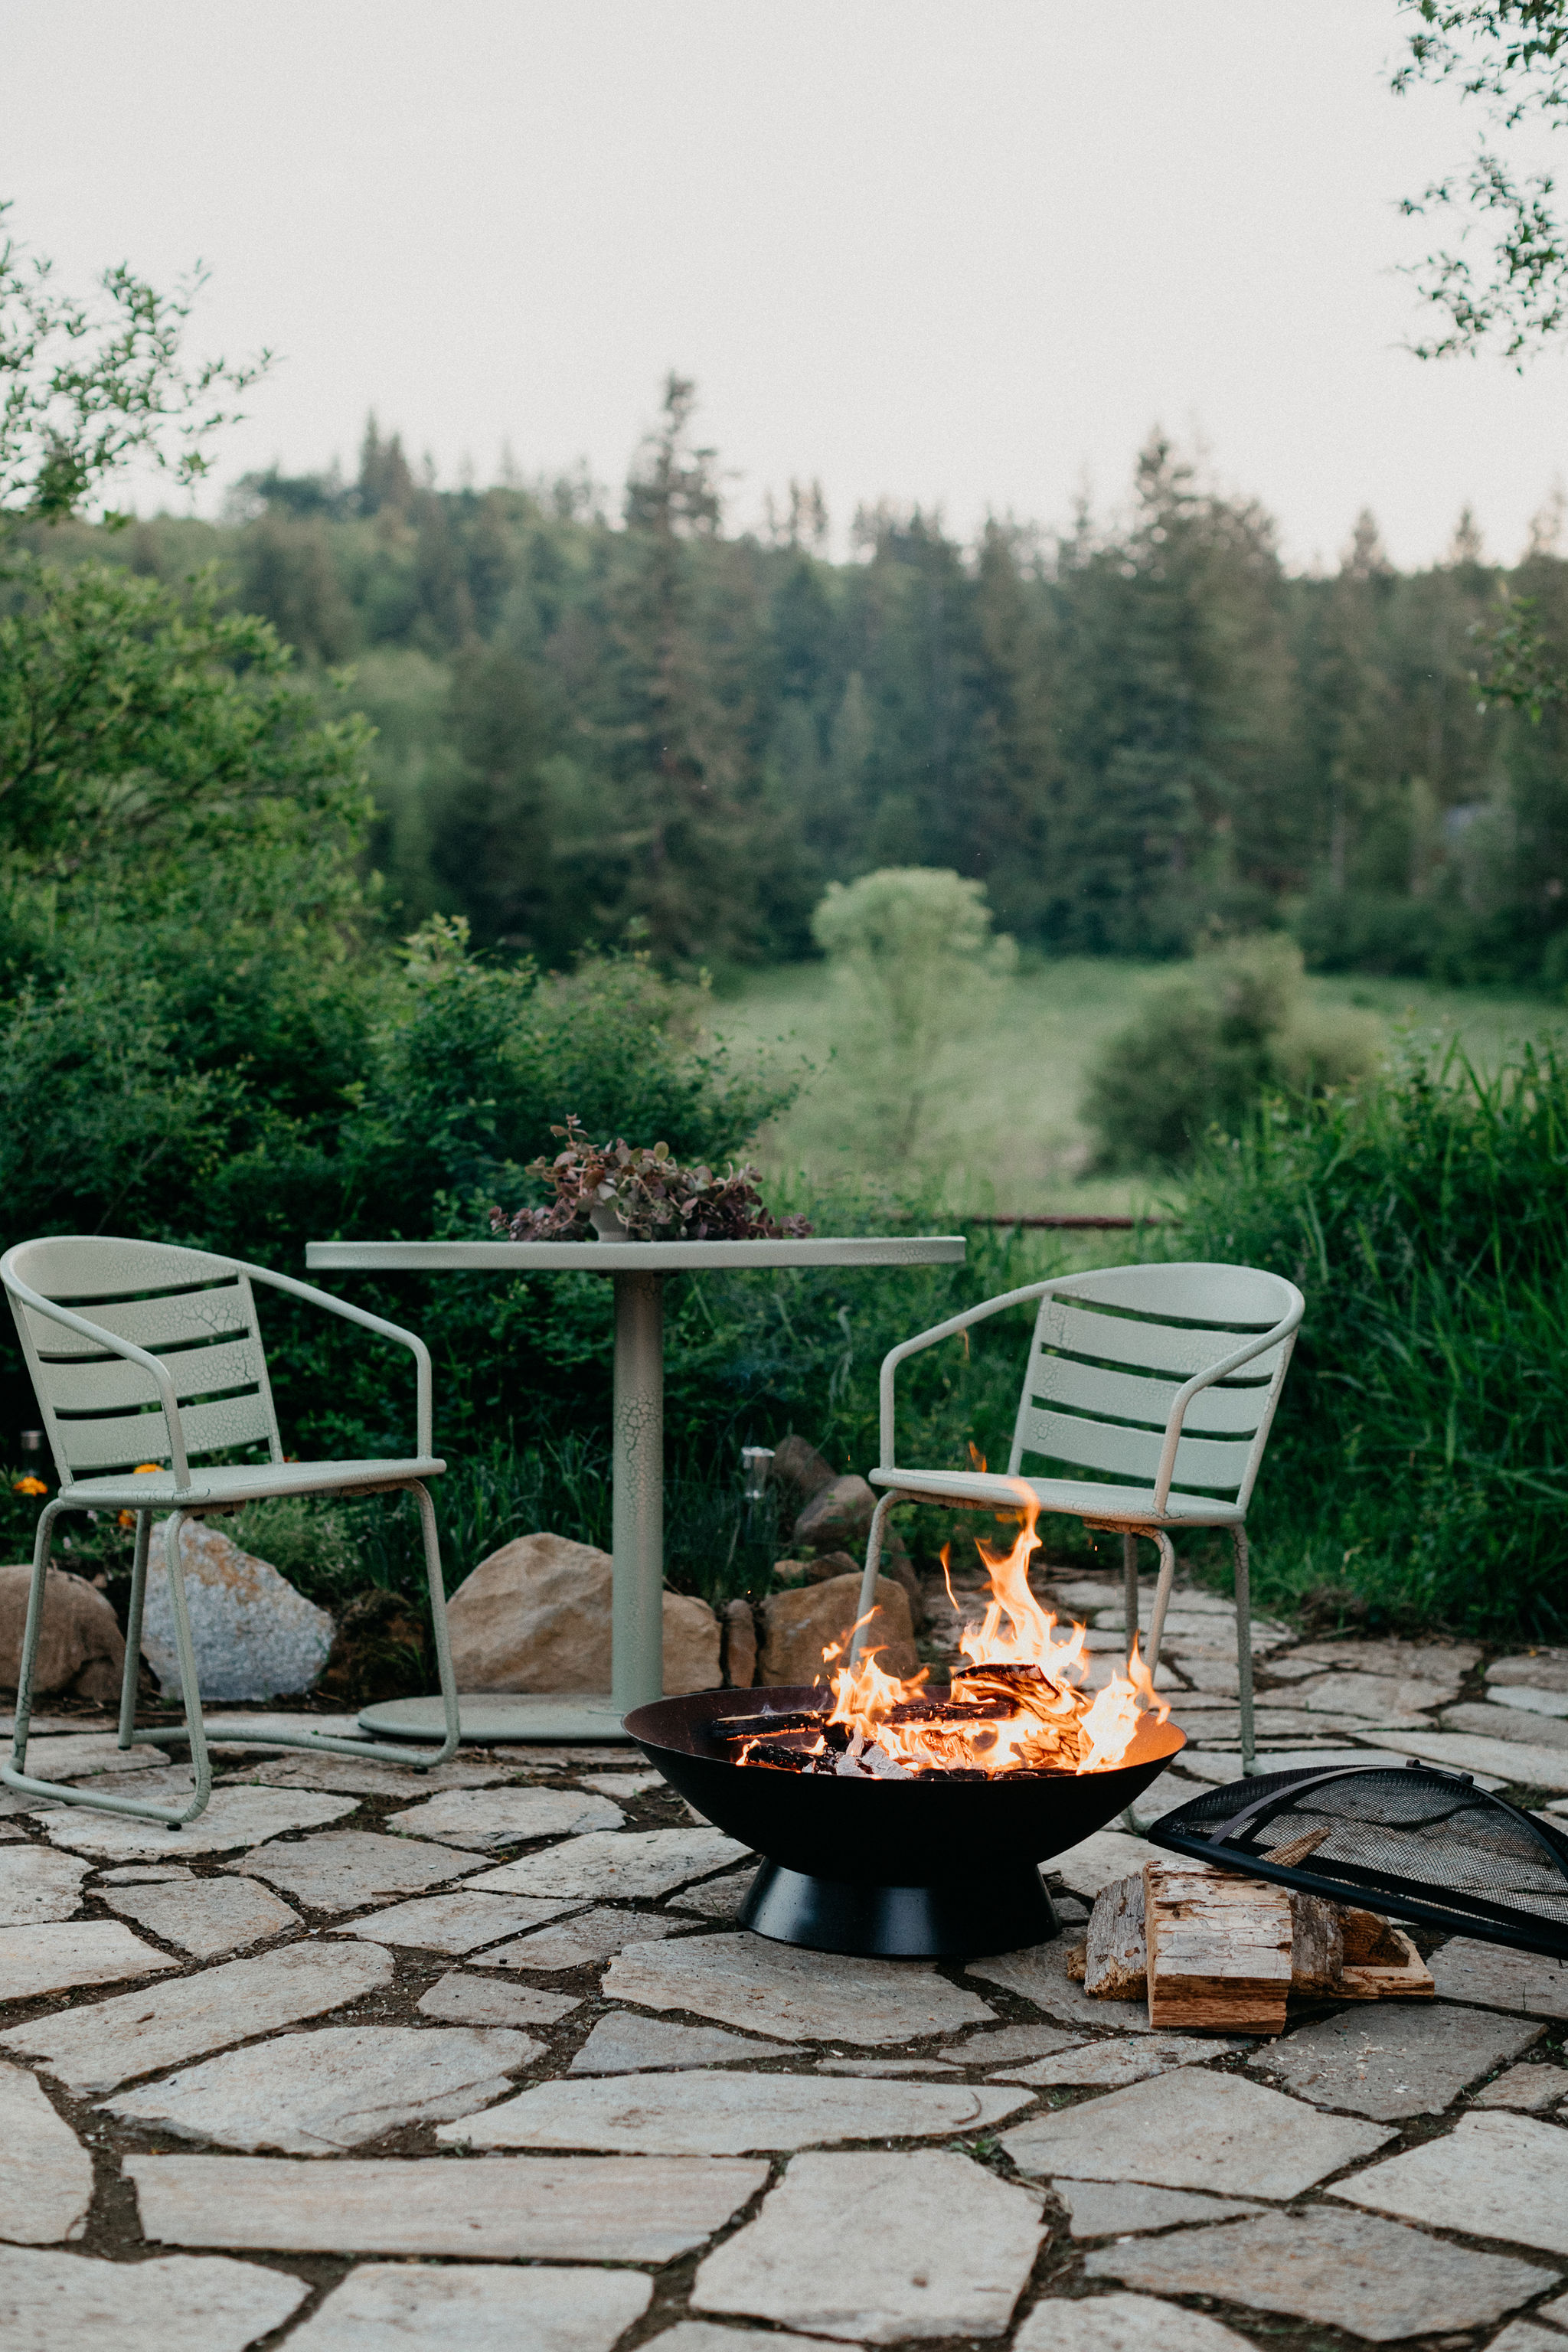 Outdoor fire-pit, chairs and table to enjoy the beautiful mornings and evenings.